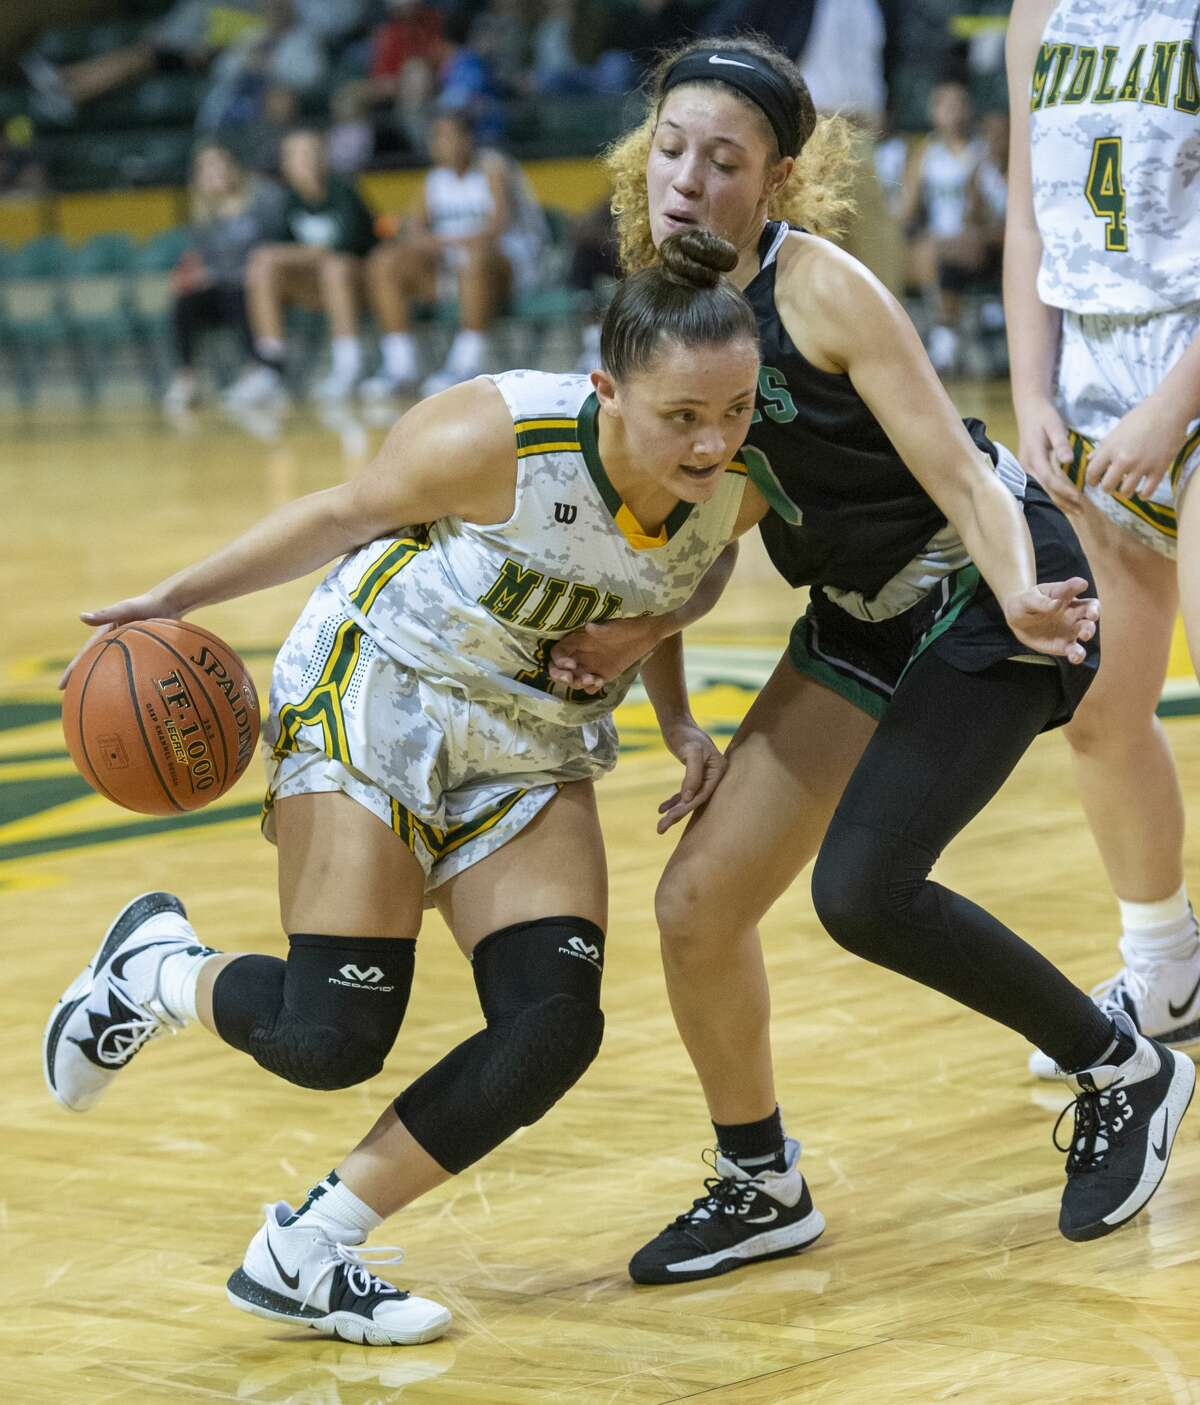 Midland College's Kayla Anderson drives the ball past Seward County's Tianna Johnson on Nov. 21, 2019 at Chaparral Center.